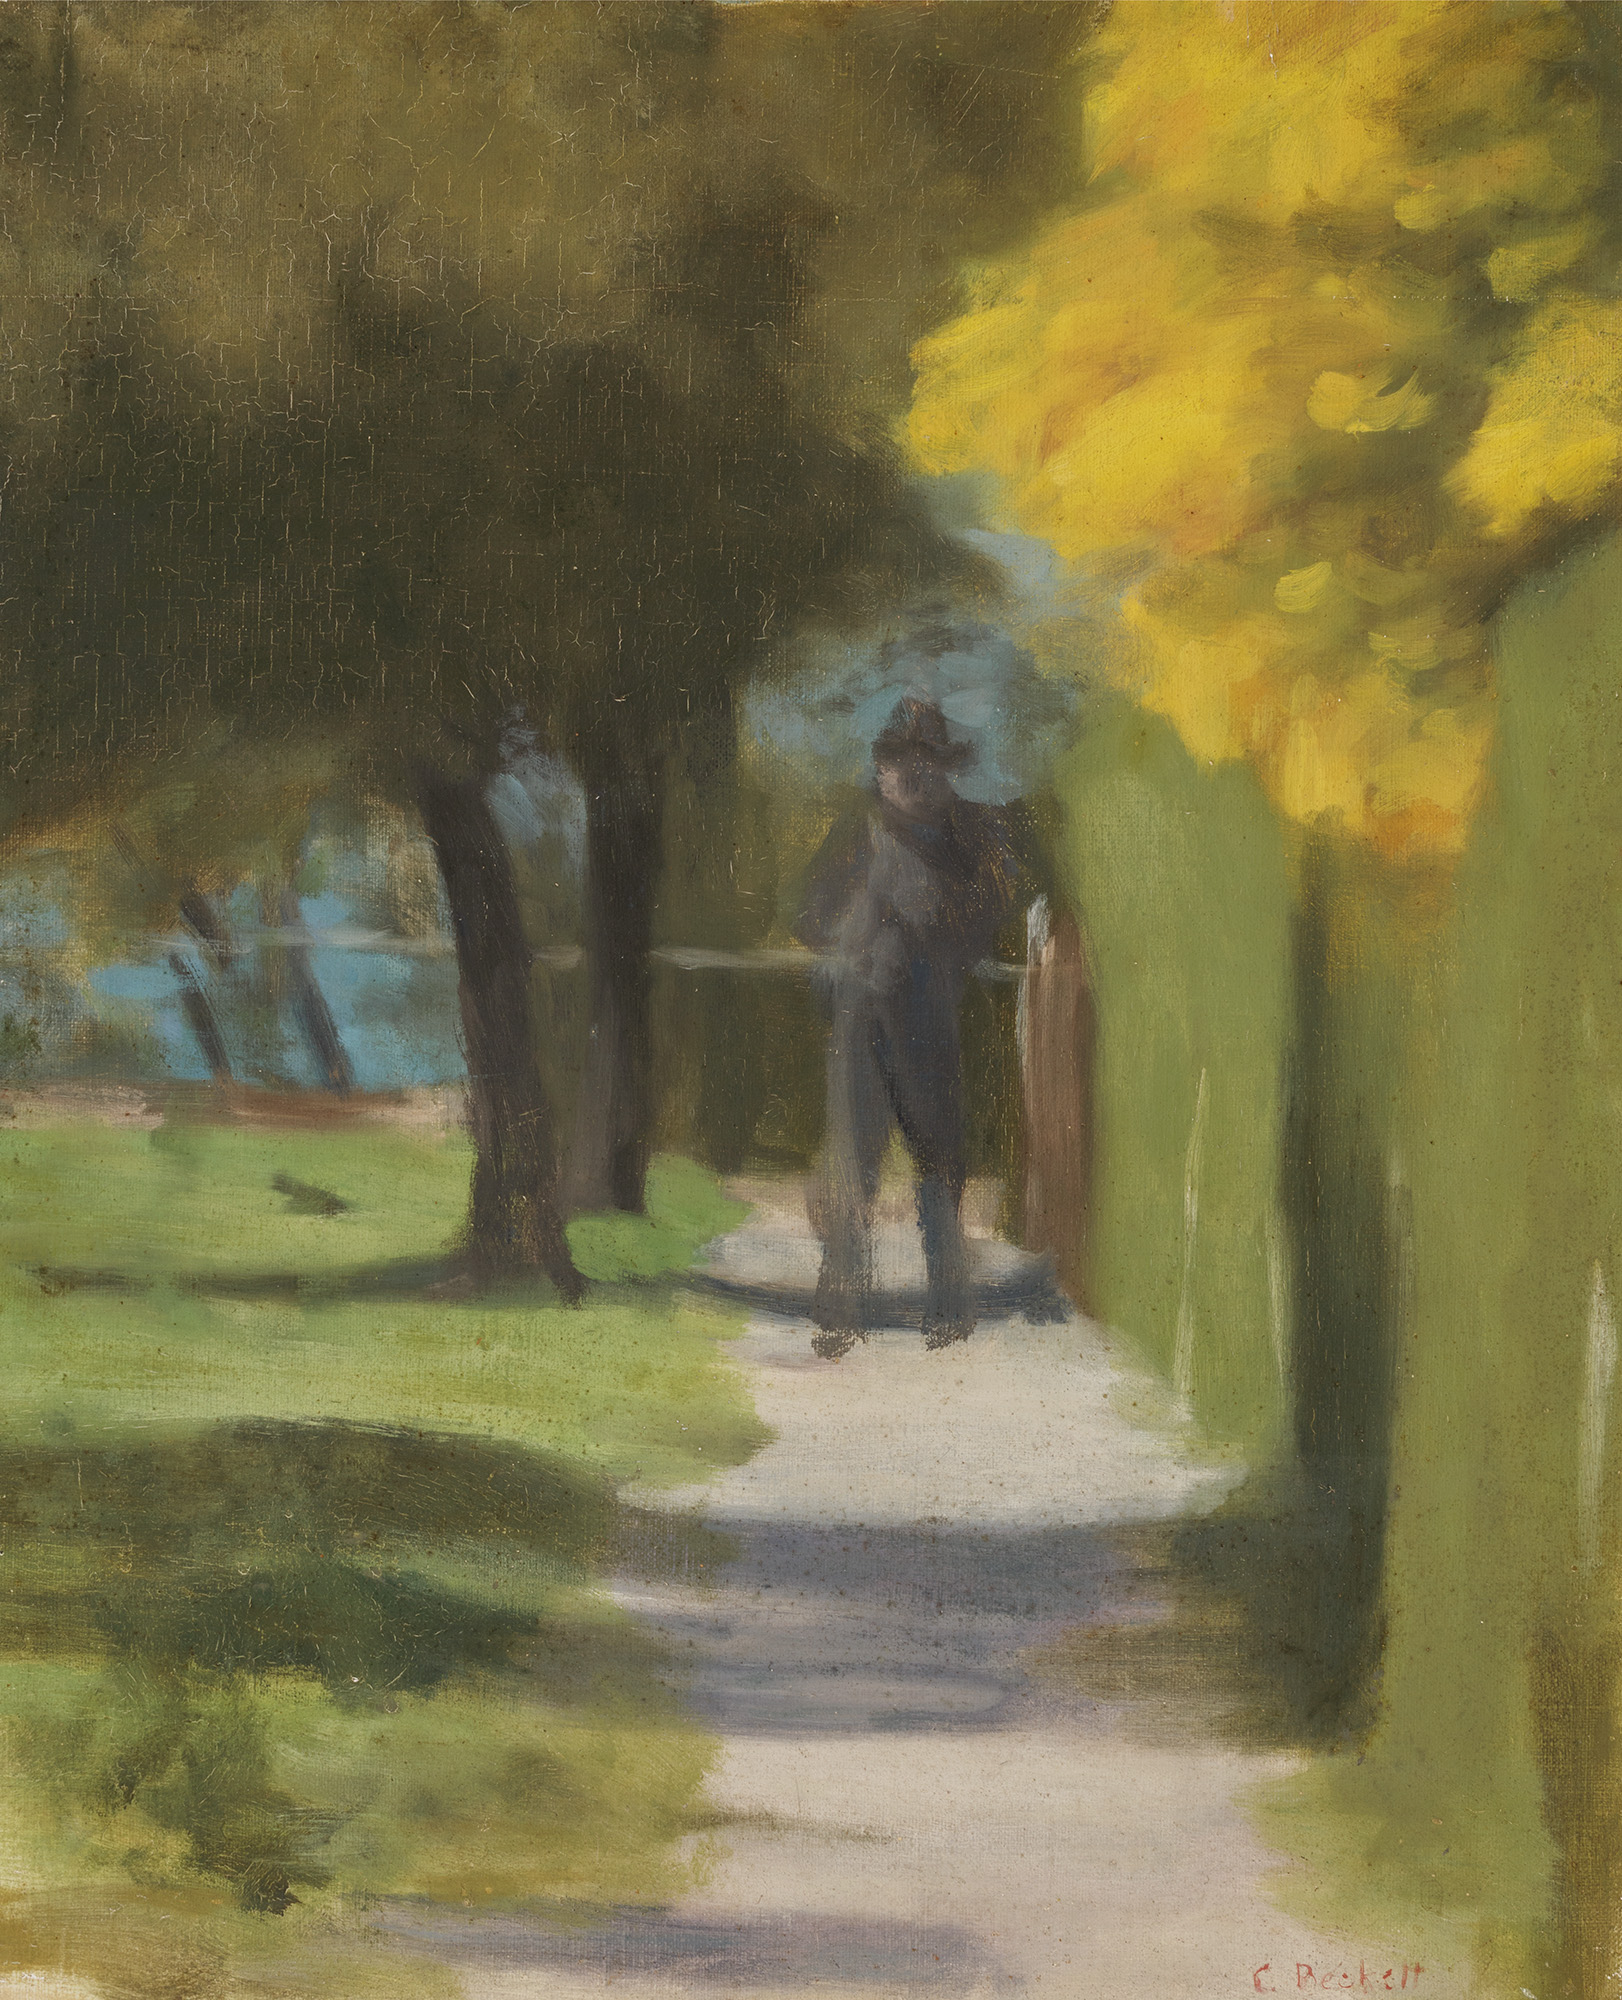 A painting by Clarice Beckett, blurry realism, with a man in the distance in a suburban street